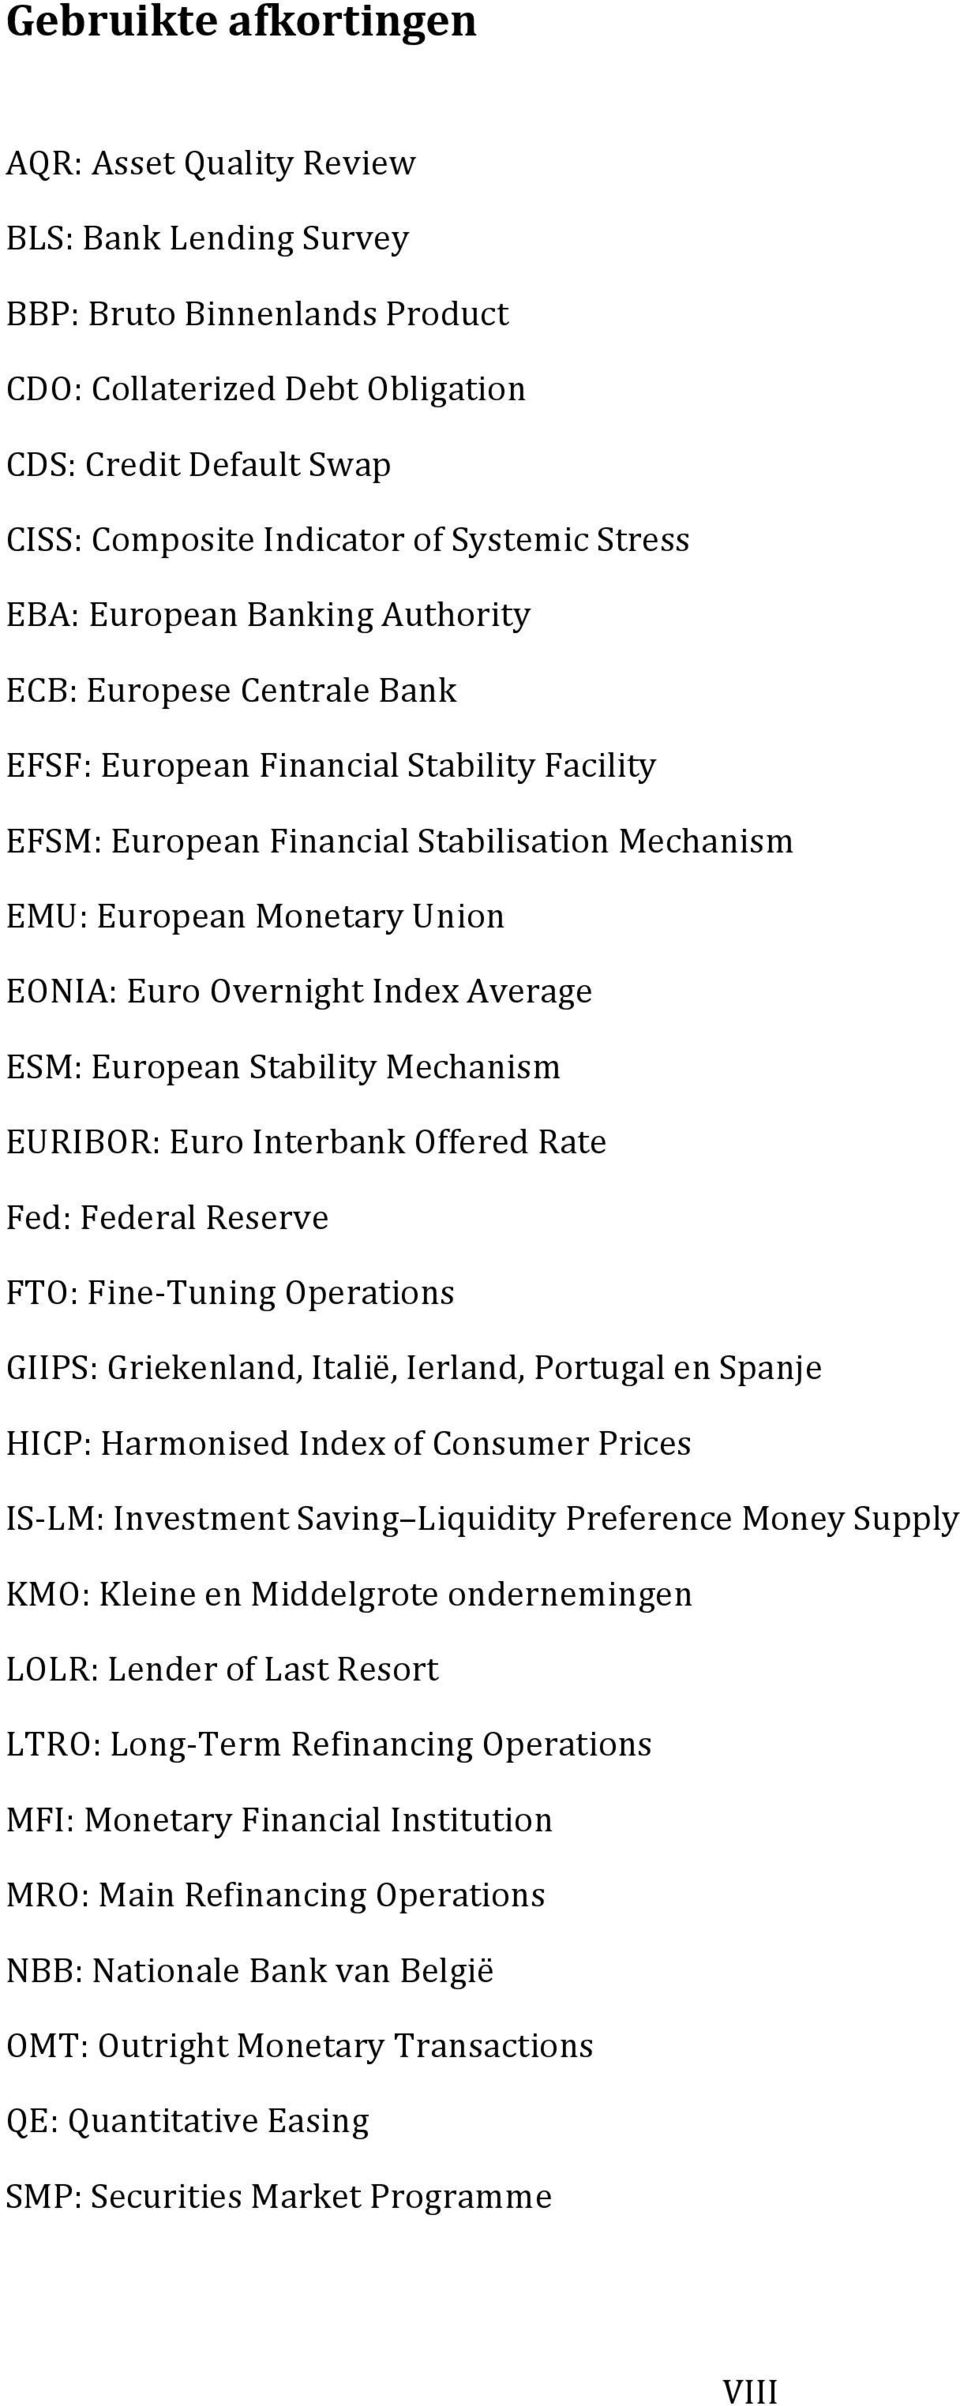 EONIA: Euro Overnight Index Average ESM: European Stability Mechanism EURIBOR: Euro Interbank Offered Rate Fed: Federal Reserve FTO: Fine- Tuning Operations GIIPS: Griekenland, Italië, Ierland,